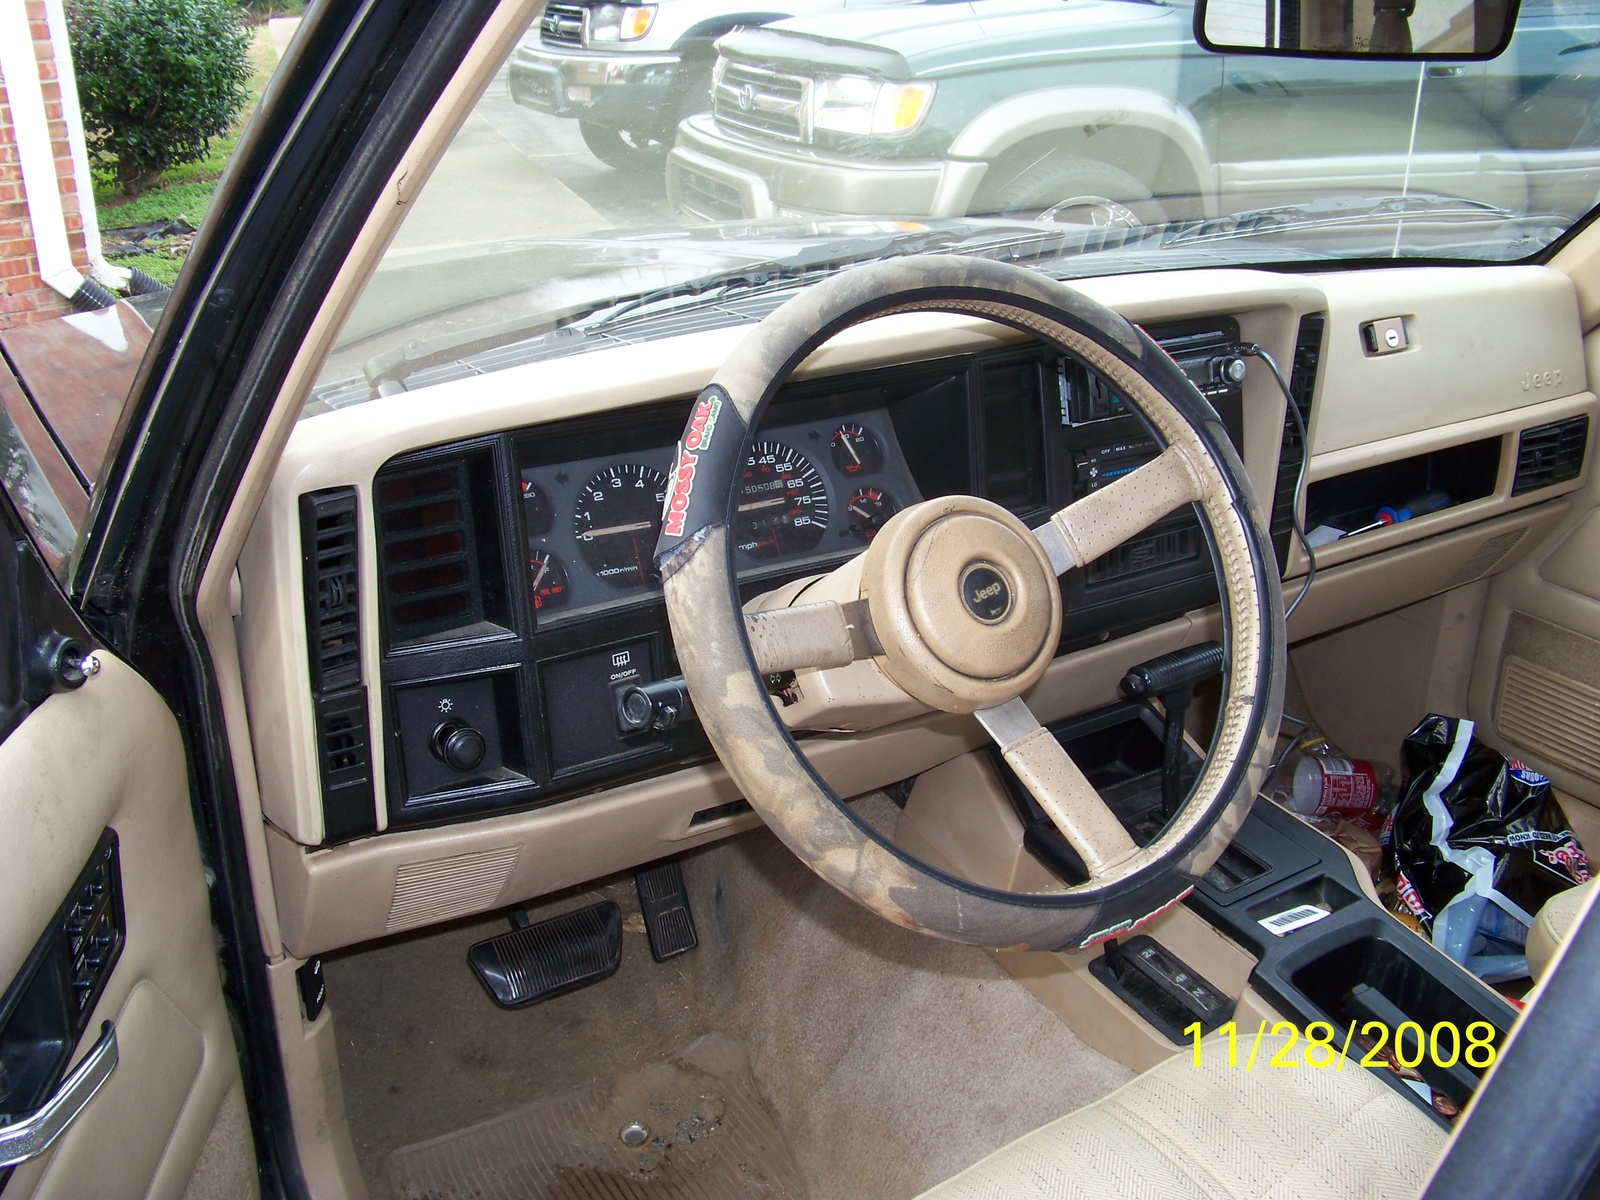 1993 jeep cherokee interior pictures cargurus 1993 jeep grand cherokee interior